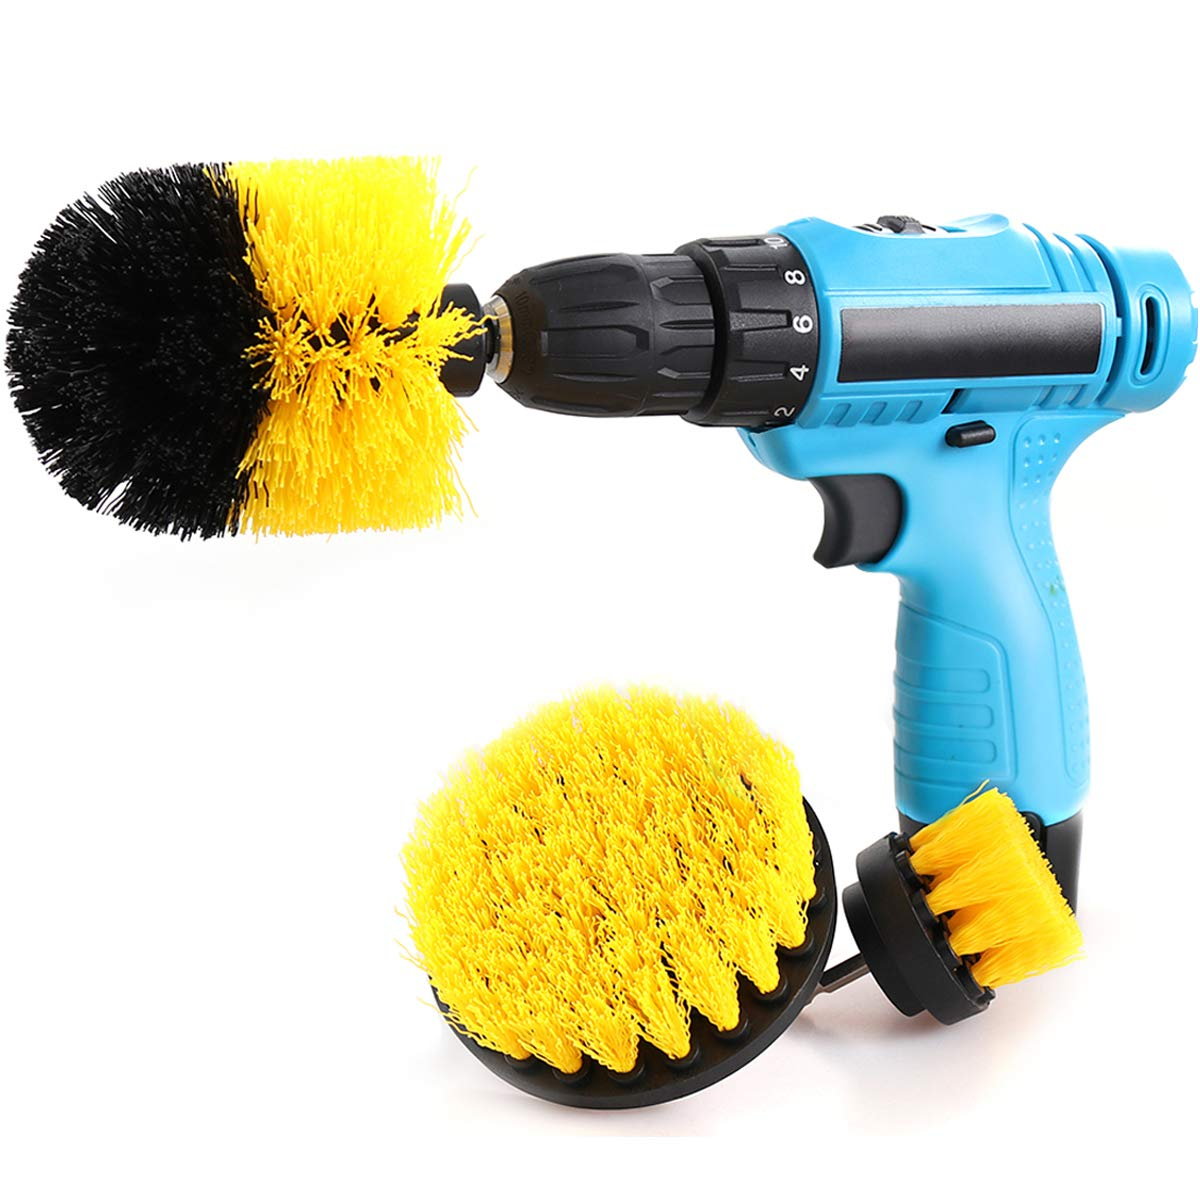 Drill Brush Attachment Kits, 3 Pieces Cleaning Power Scrubber Brush Heads for Cordless/Corded Drills, All Purpose Bathroom Surface, Grout, Tub, Shower, Kitchen, Drill Is Not Included (Medium-Yellow)